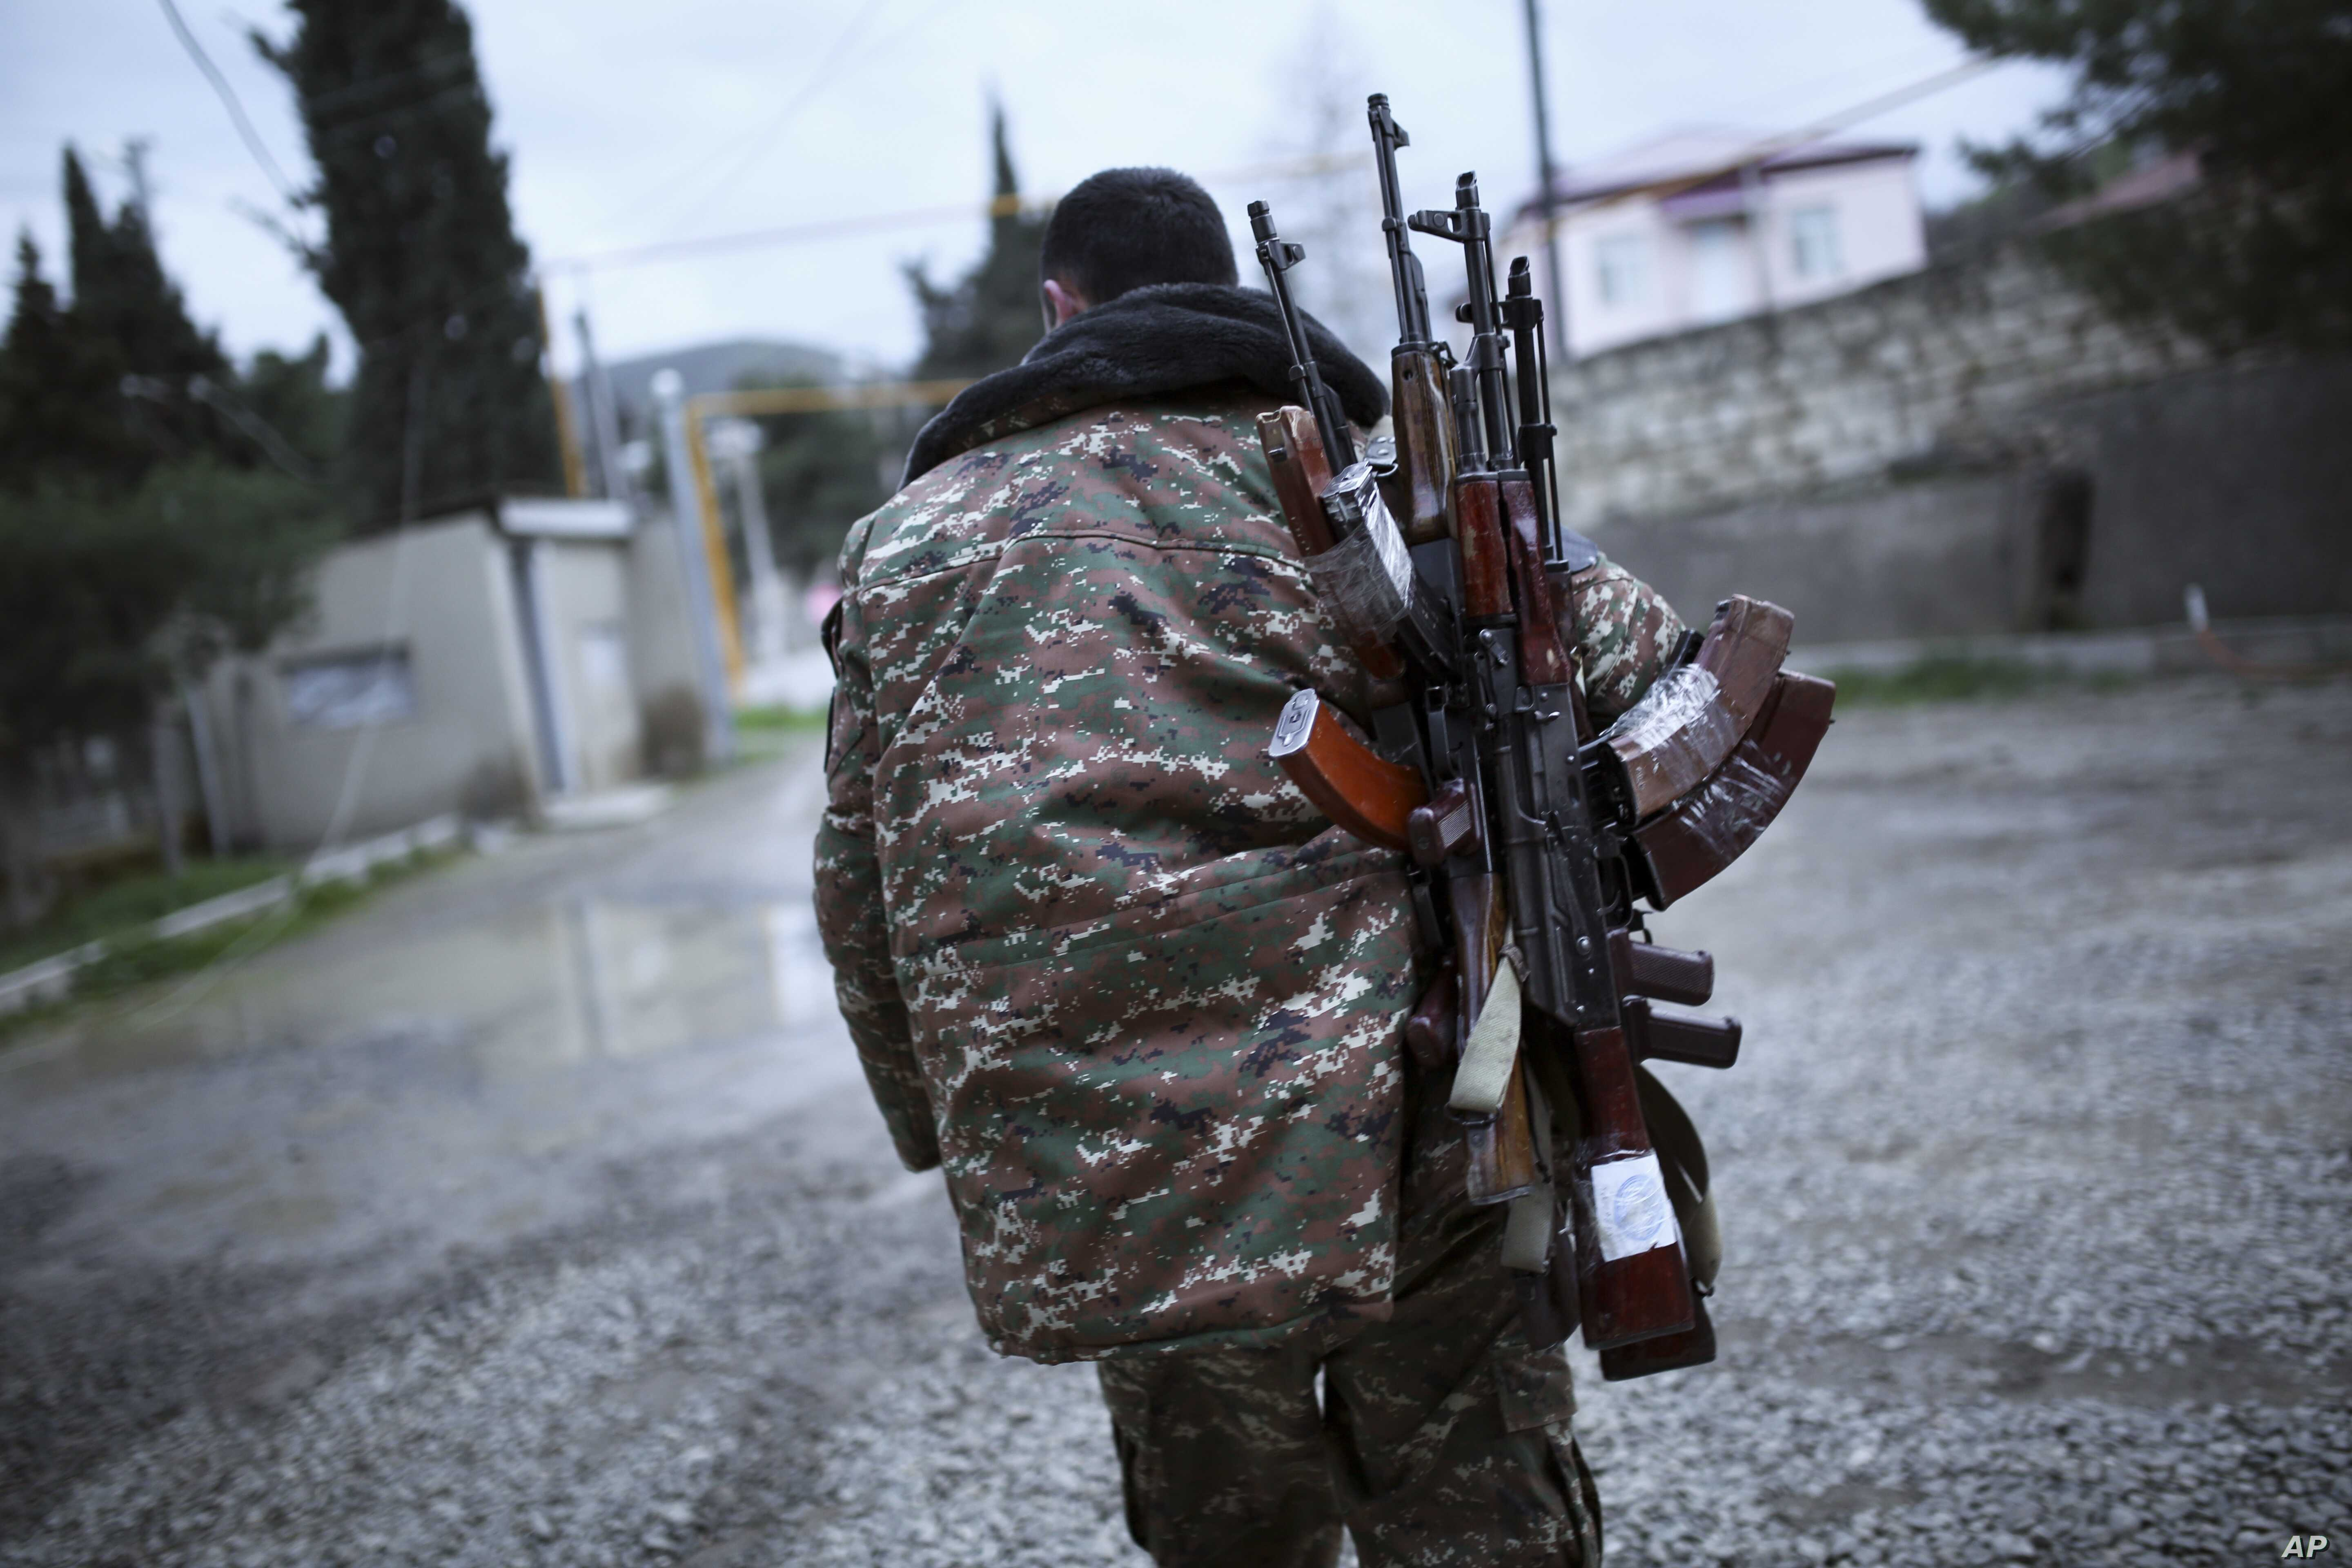 An ethnic Armenian fighter carries Kalashnikov machine guns to his comrade-in-arms at Martakert province in the separatist region of Nagorno-Karabakh, Azerbaijan, Monday, April 4, 2016.